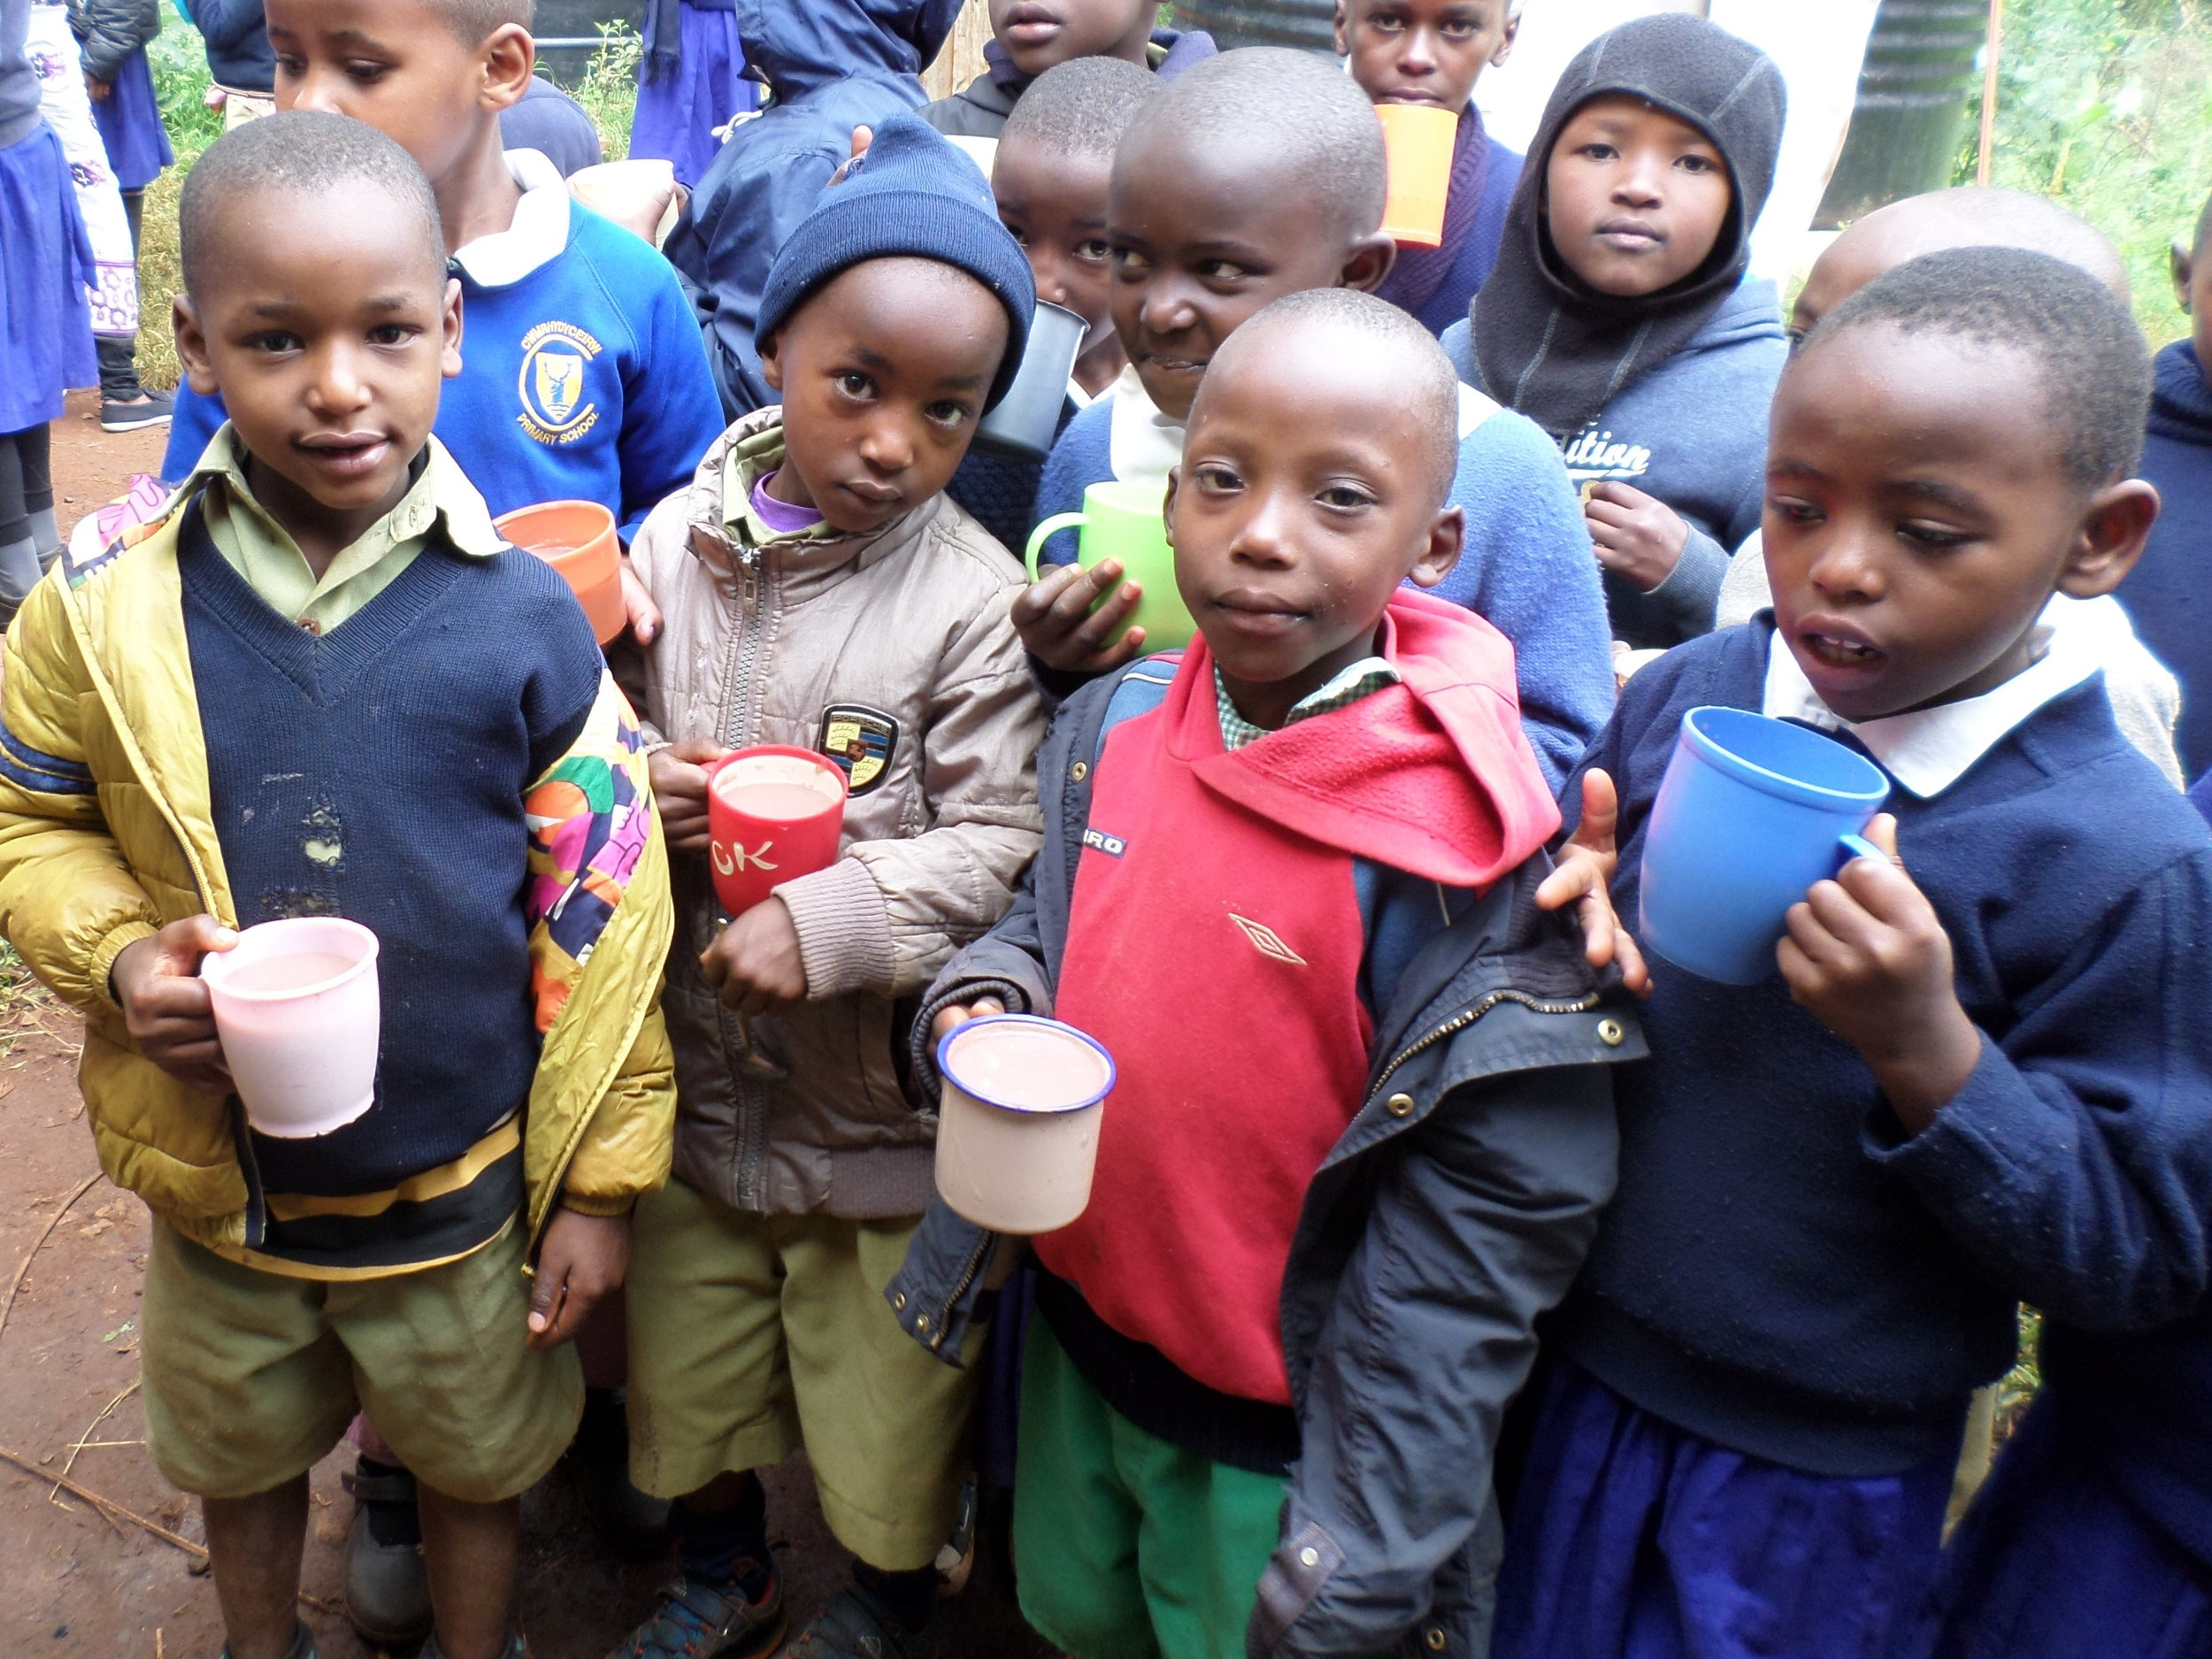 A group of children at Giachuki Primary School in Kenya, holding their mugs of porridge.